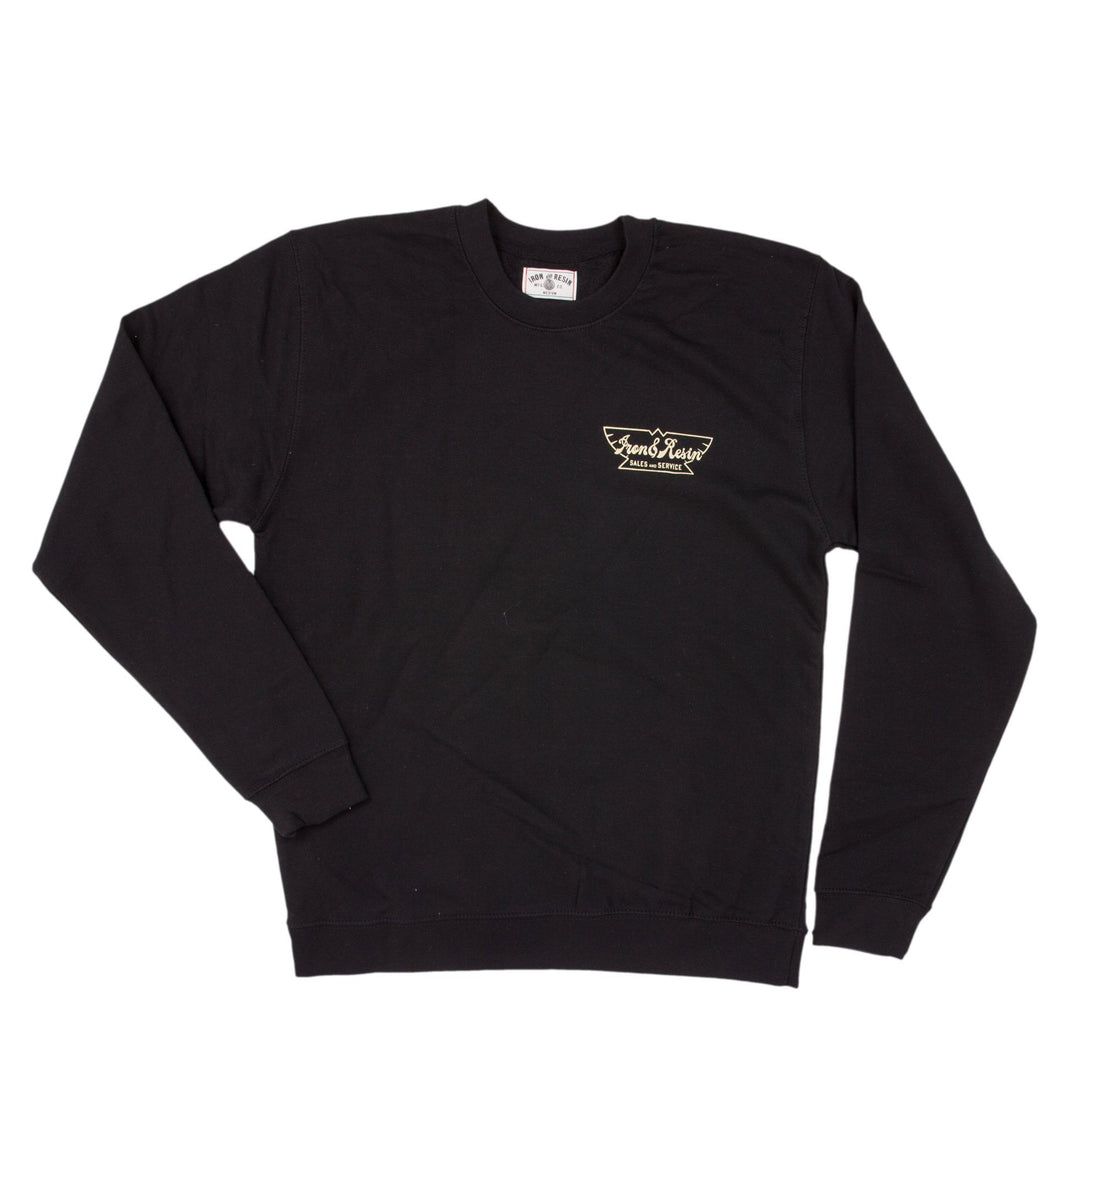 Sales And Service Fleece - Tops - Iron and Resin